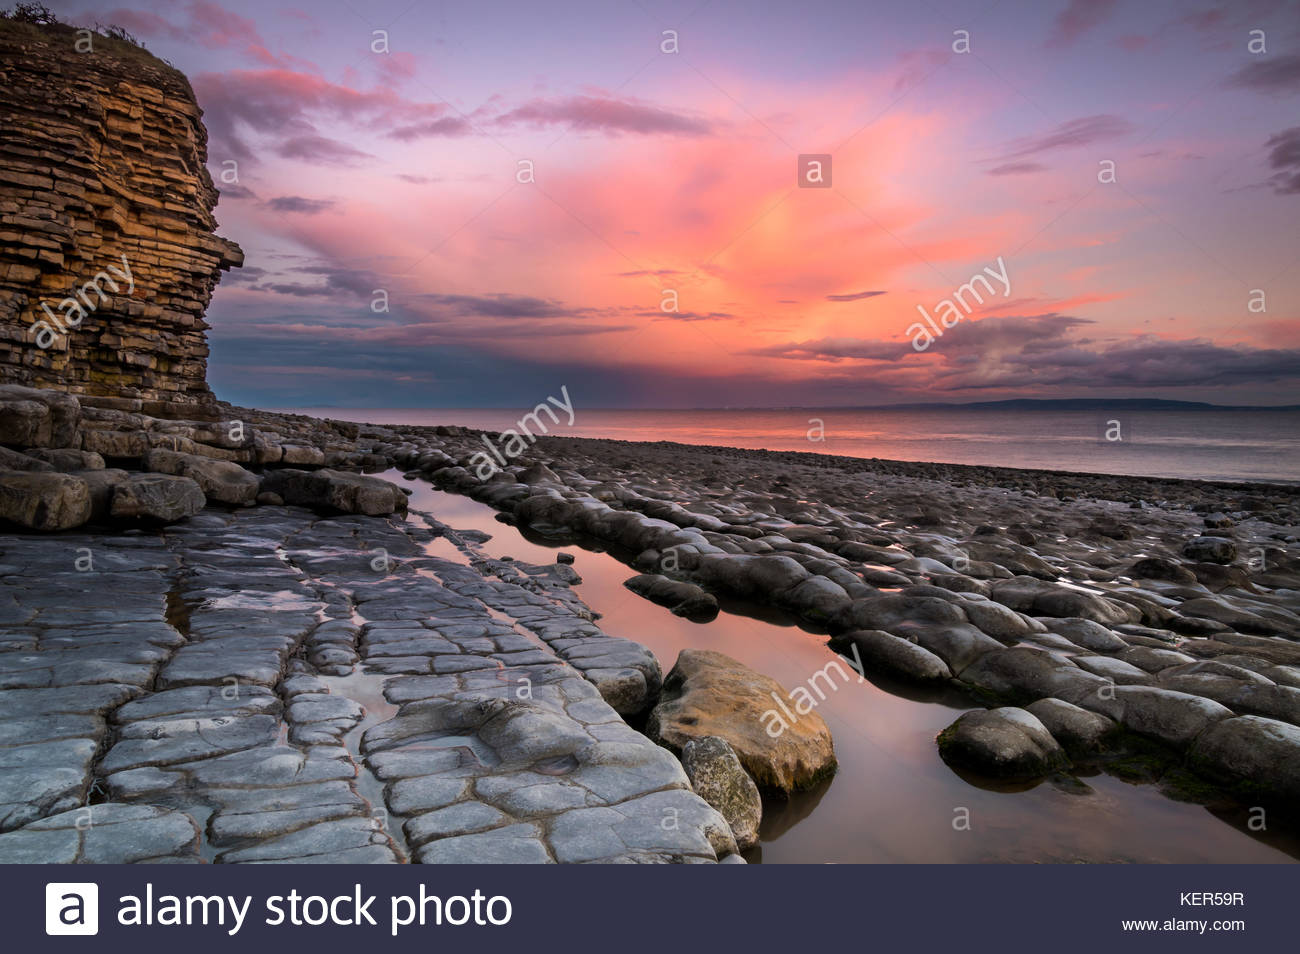 Stunning sunset seascape photograph taken at the heritage coast, Rhoose Point, Vale of Glamorgan in Wales. - Stock Image